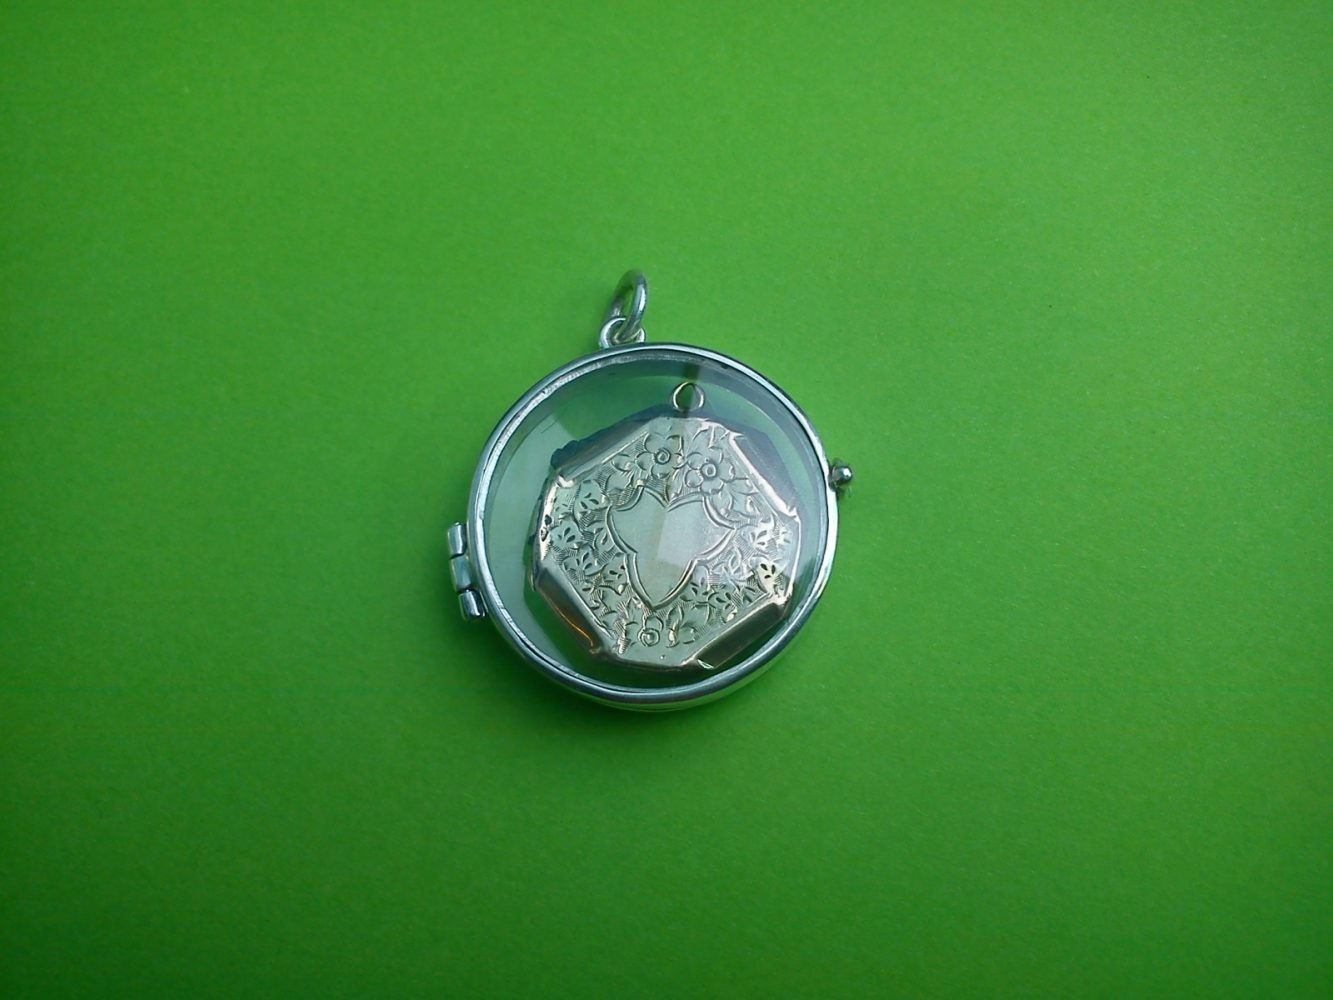 Outer locket made in silver with crystal watch cases so you can see the treasured inner locket which was badly damaged. Repurposed.